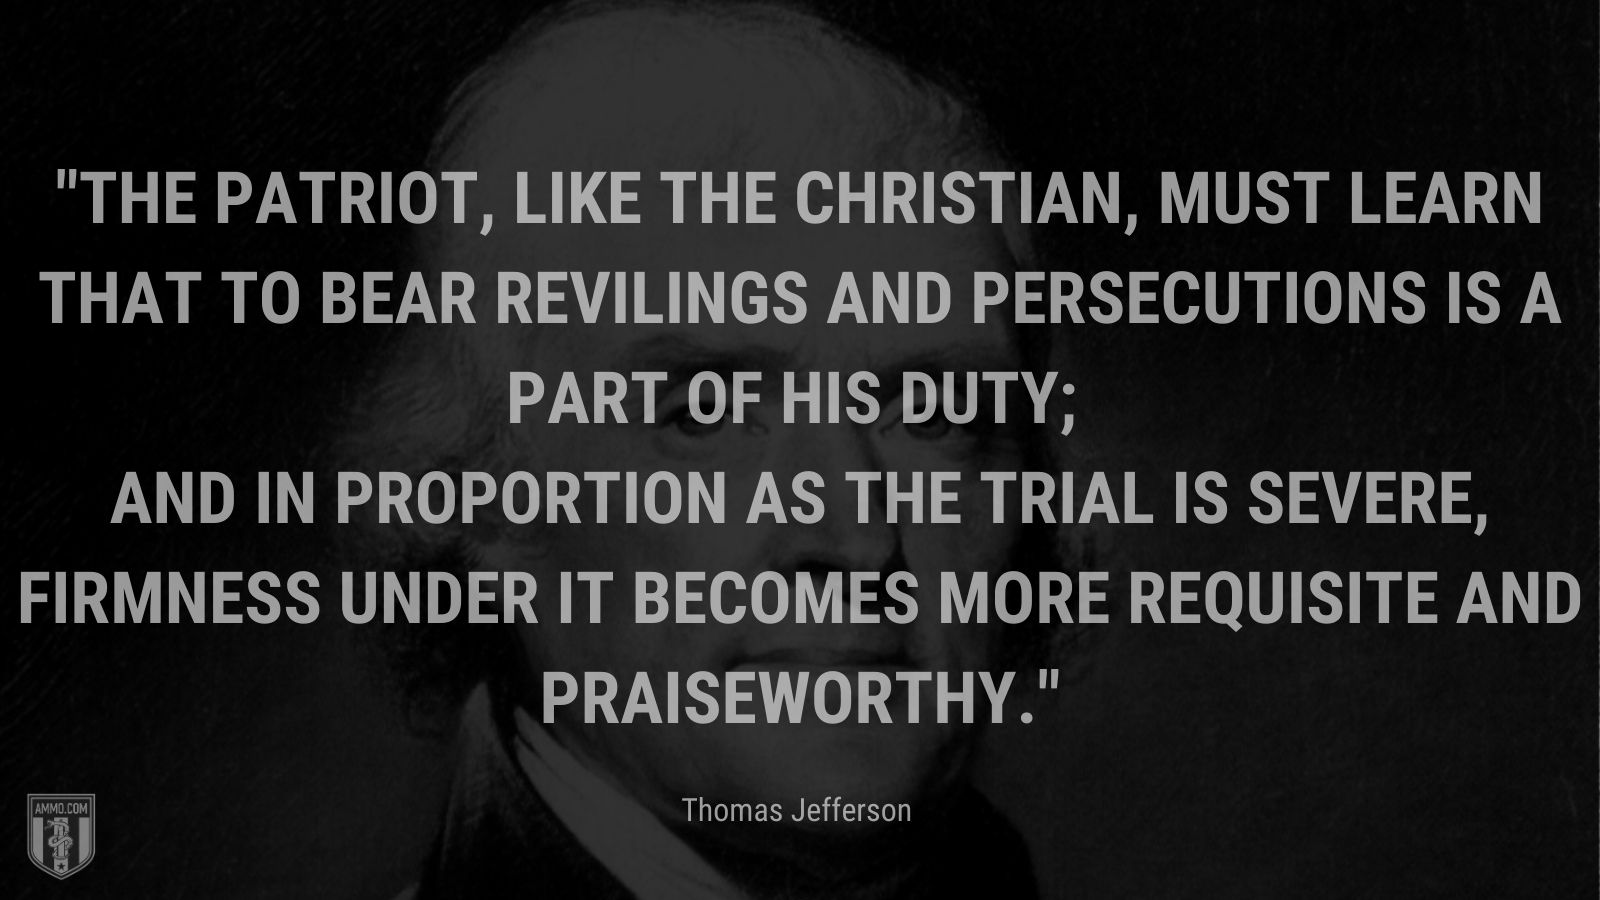 """""""The patriot, like the Christian, must learn that to bear revilings and persecutions is a part of his duty; and in proportion as the trial is severe, firmness under it becomes more requisite and praiseworthy."""" - Thomas Jefferson"""